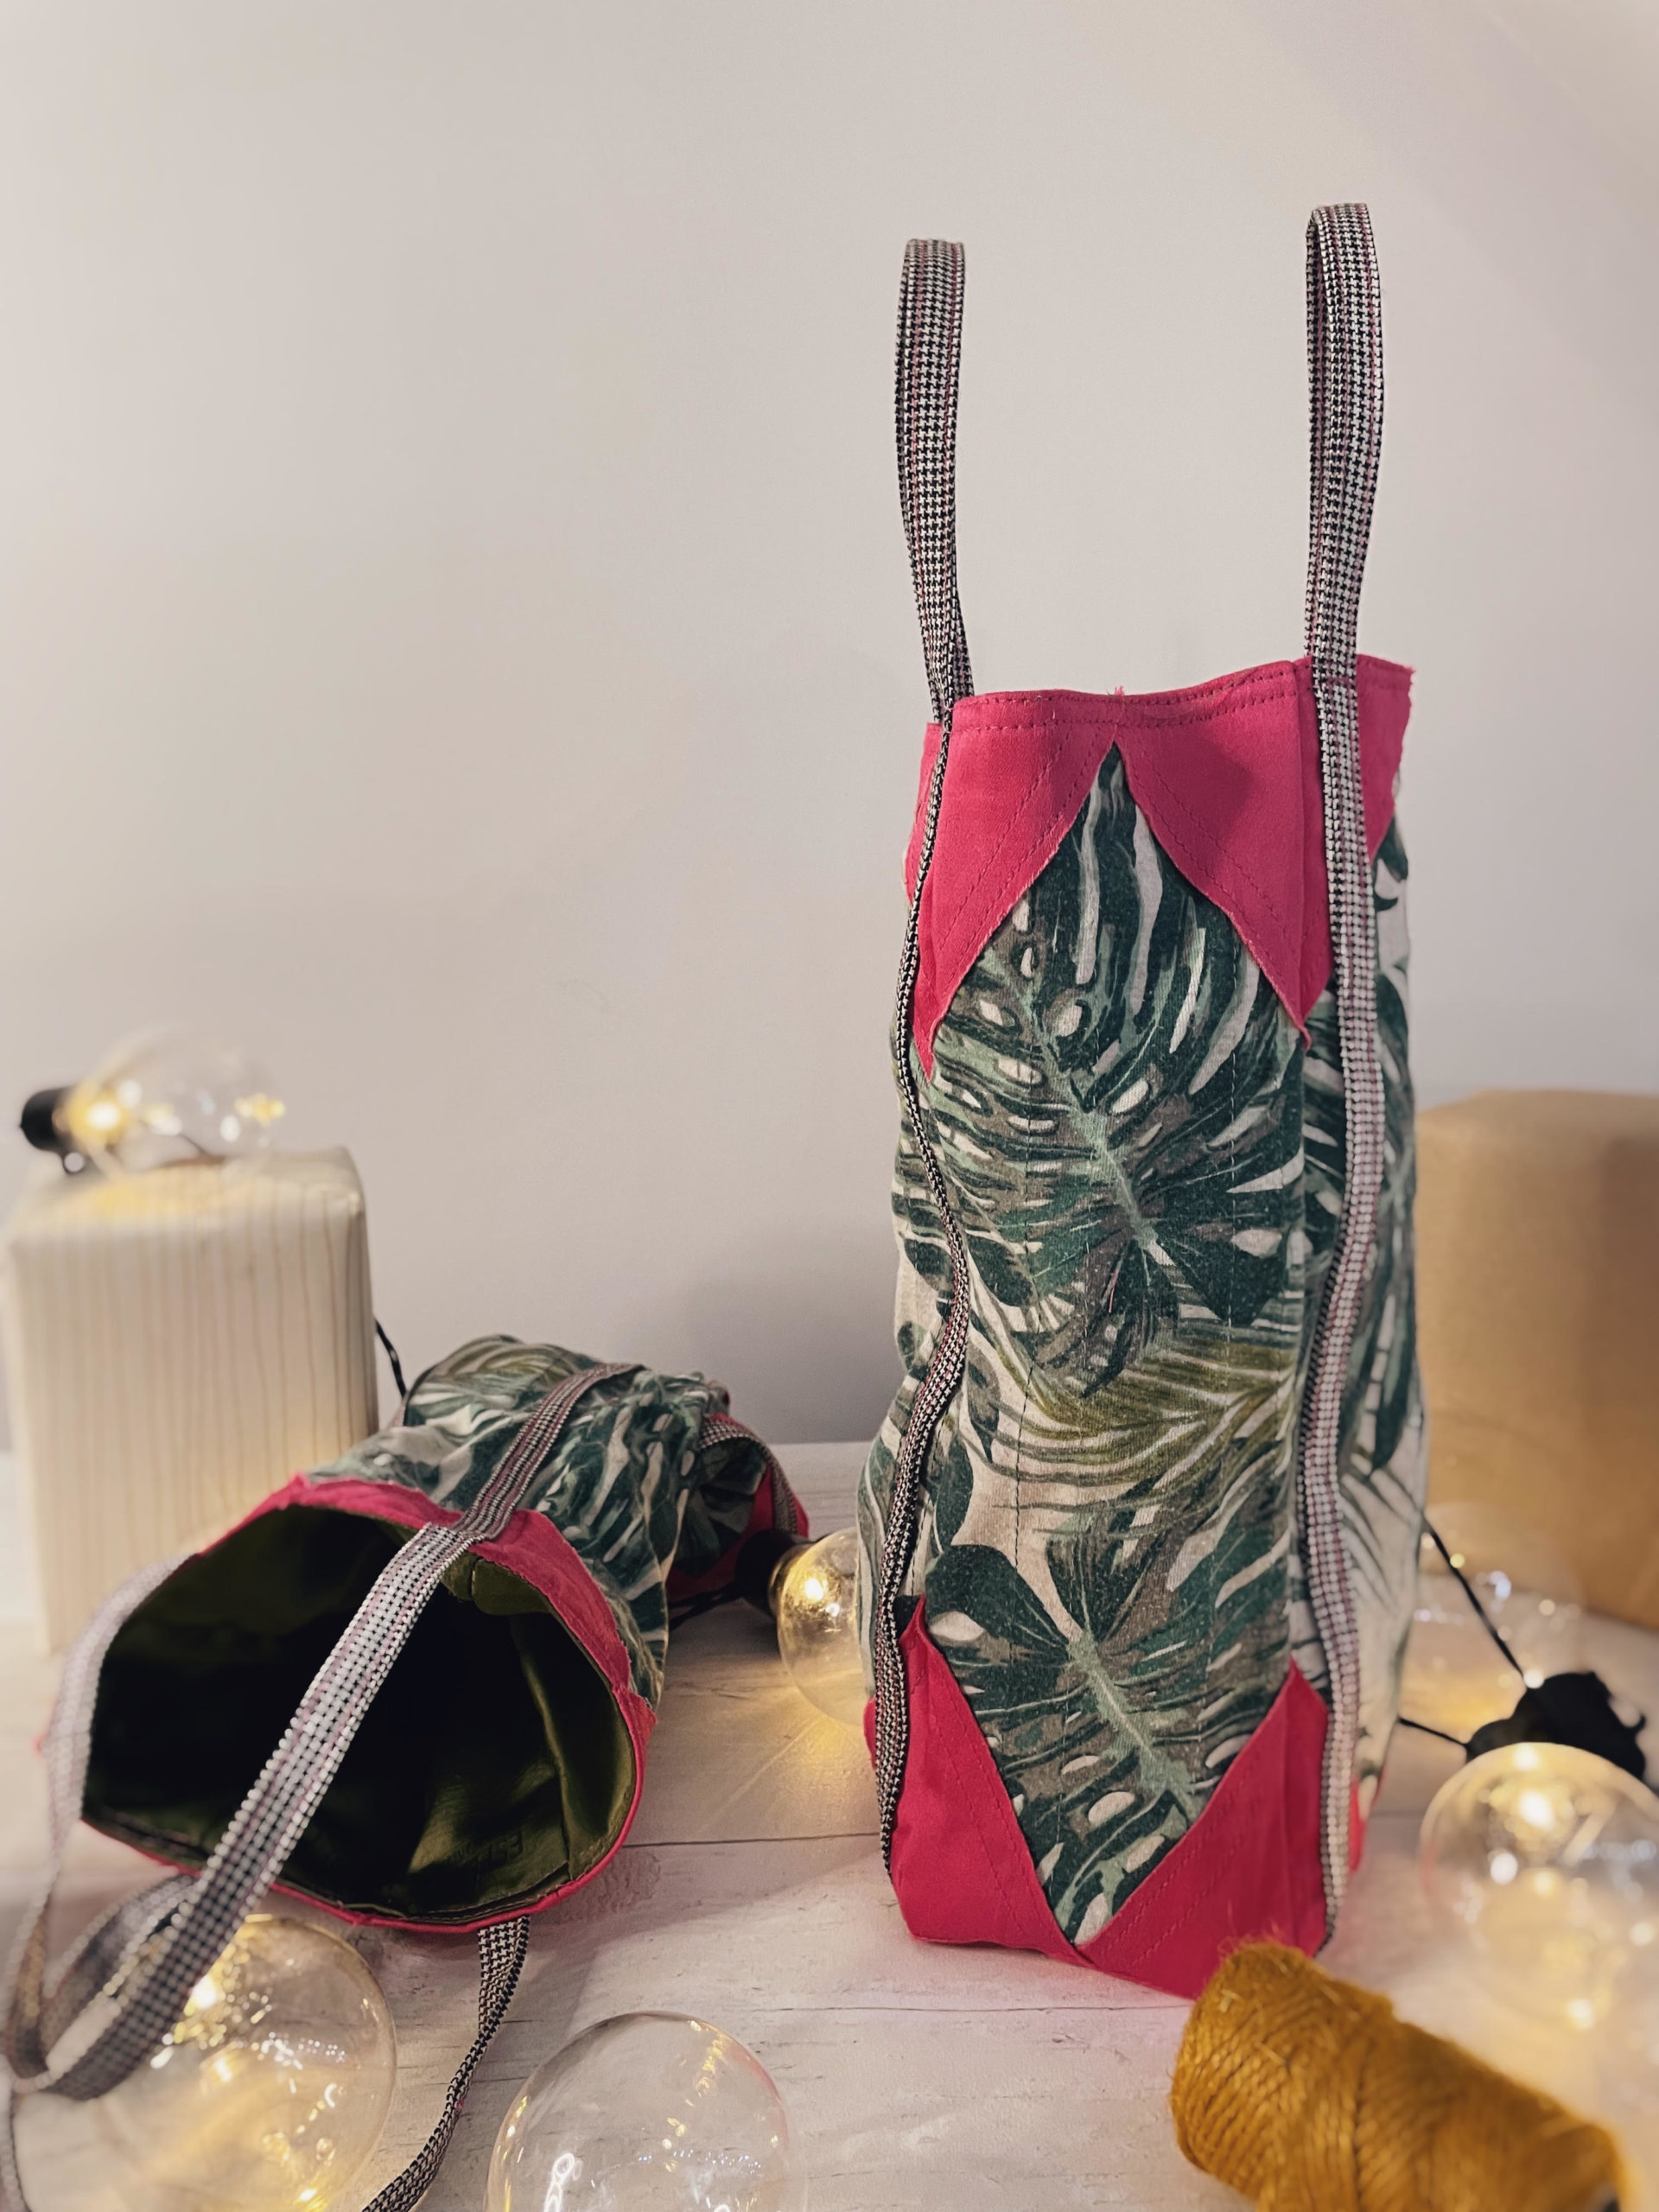 Emma bottle bag with green leaf fabric and pink corners,sat on a table with some wrapped gifts.